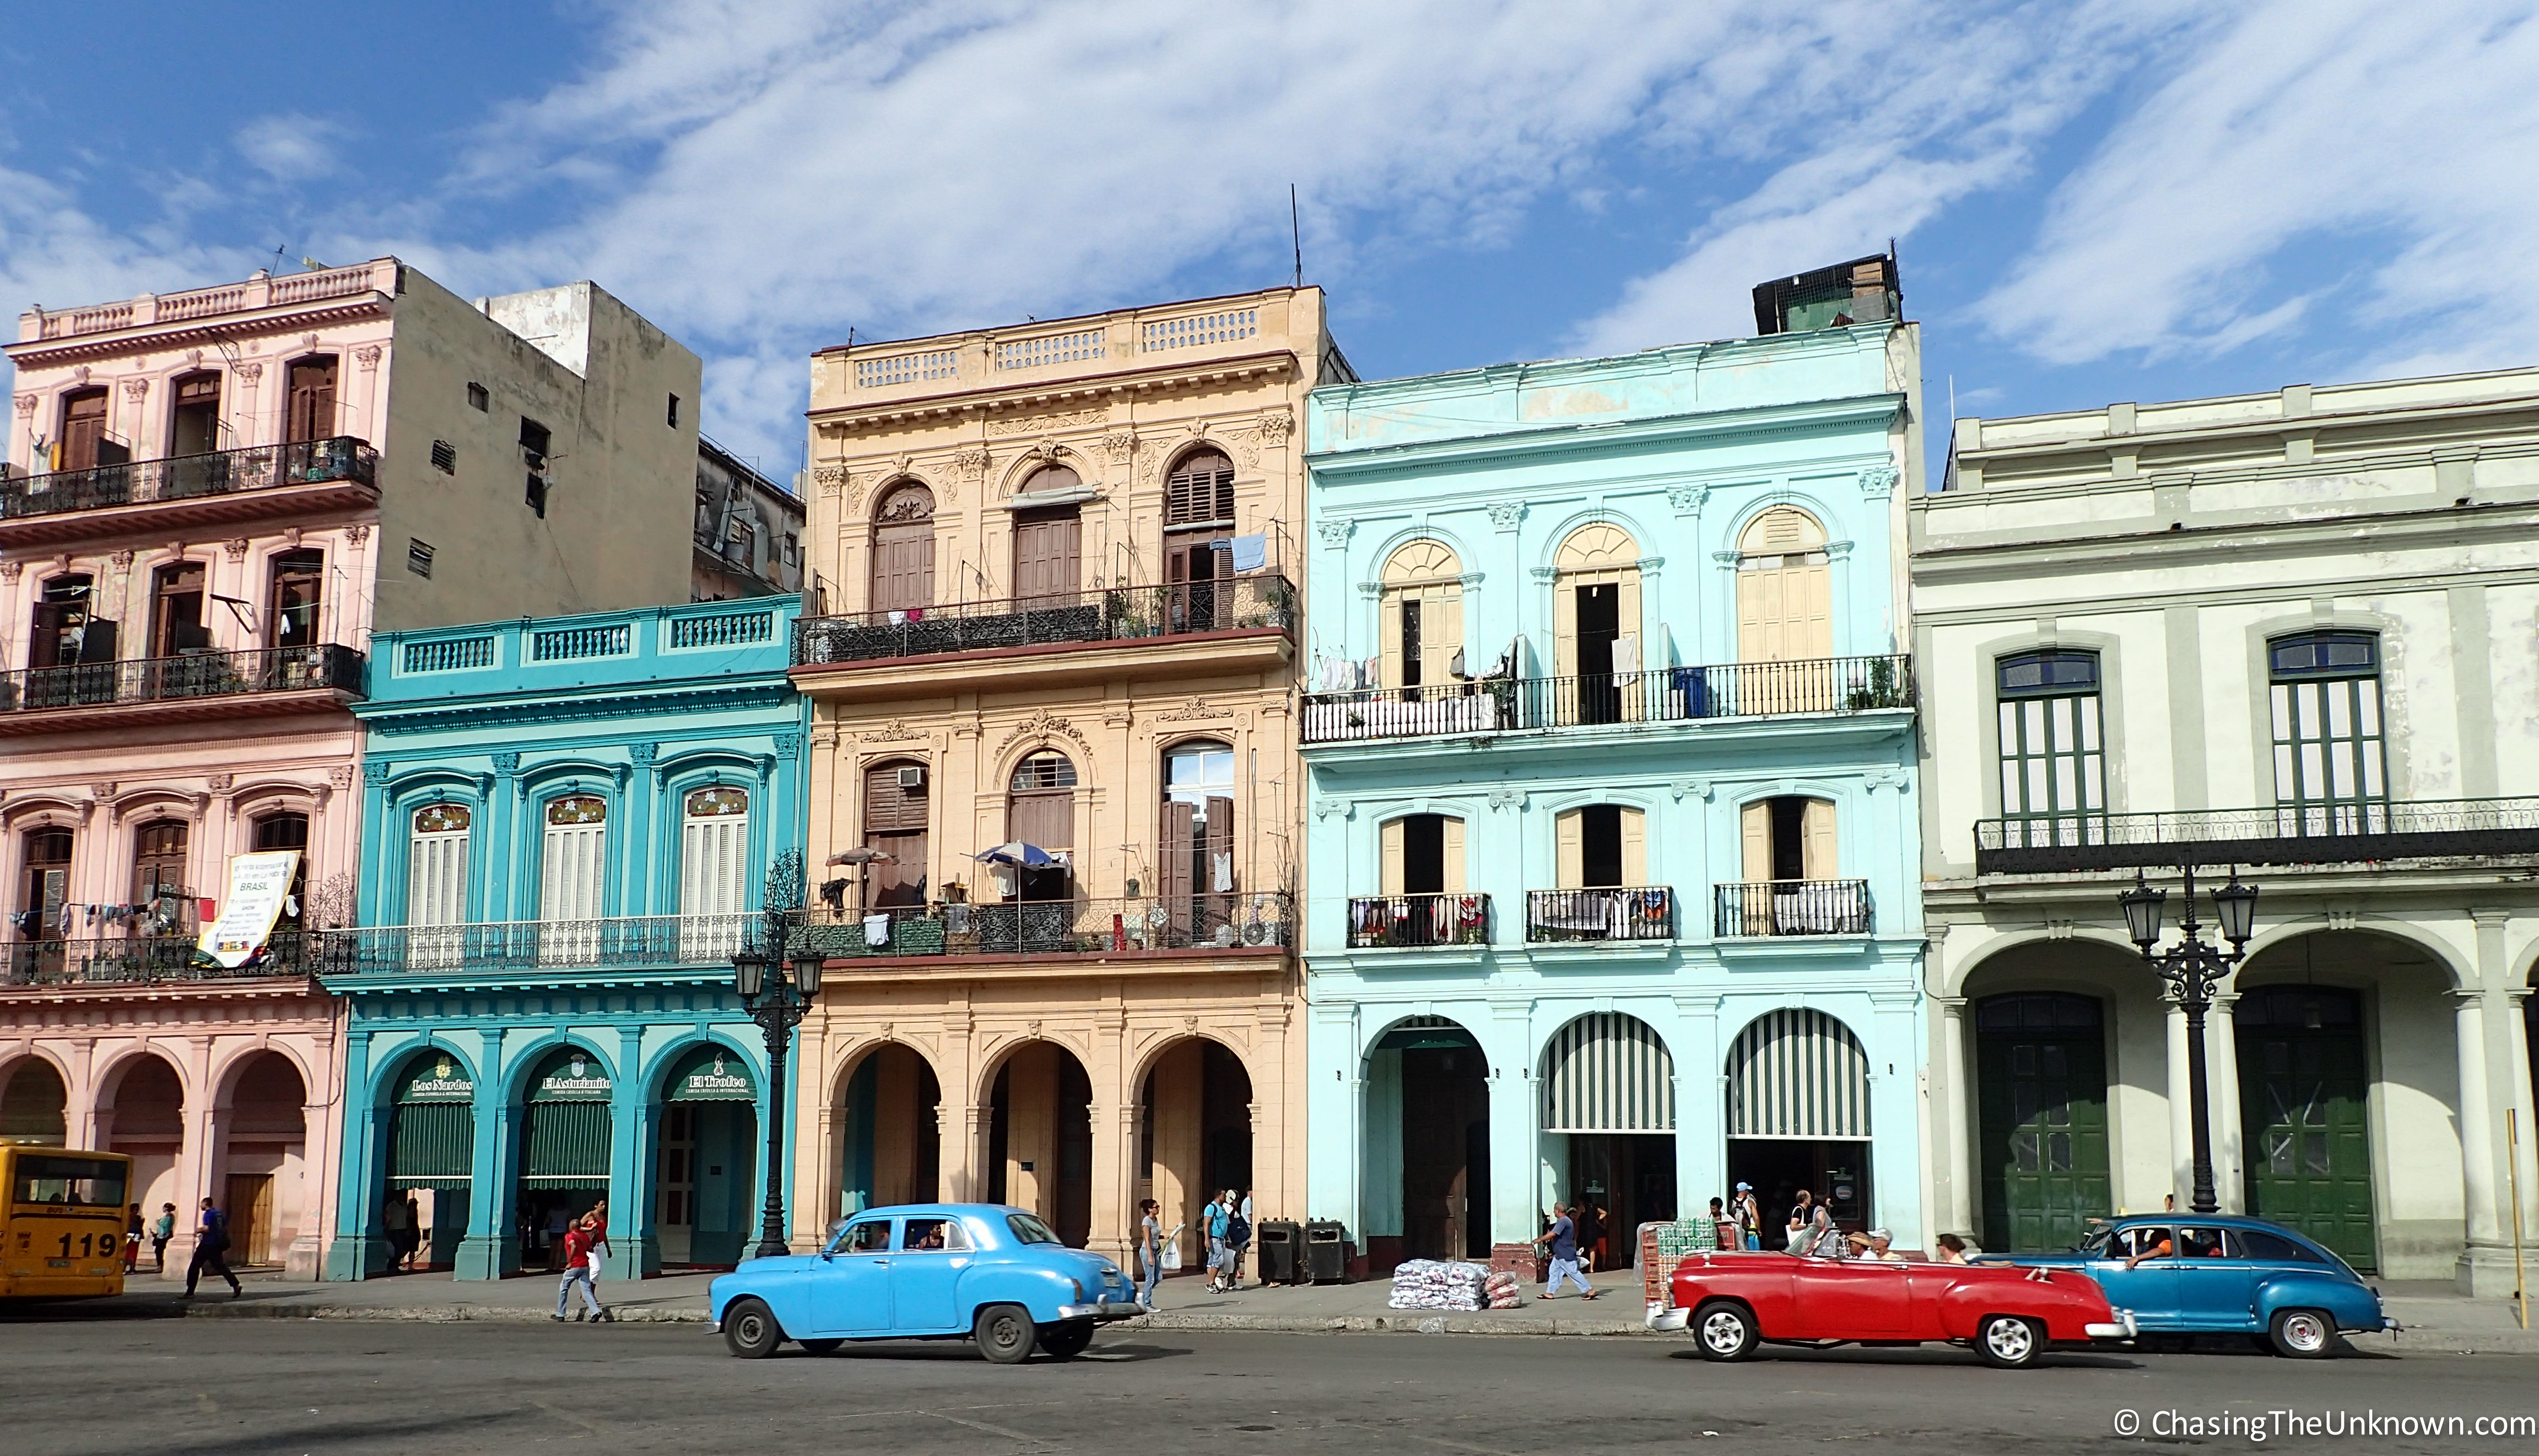 Arriving in Cuba: A Land Unlike Any Other